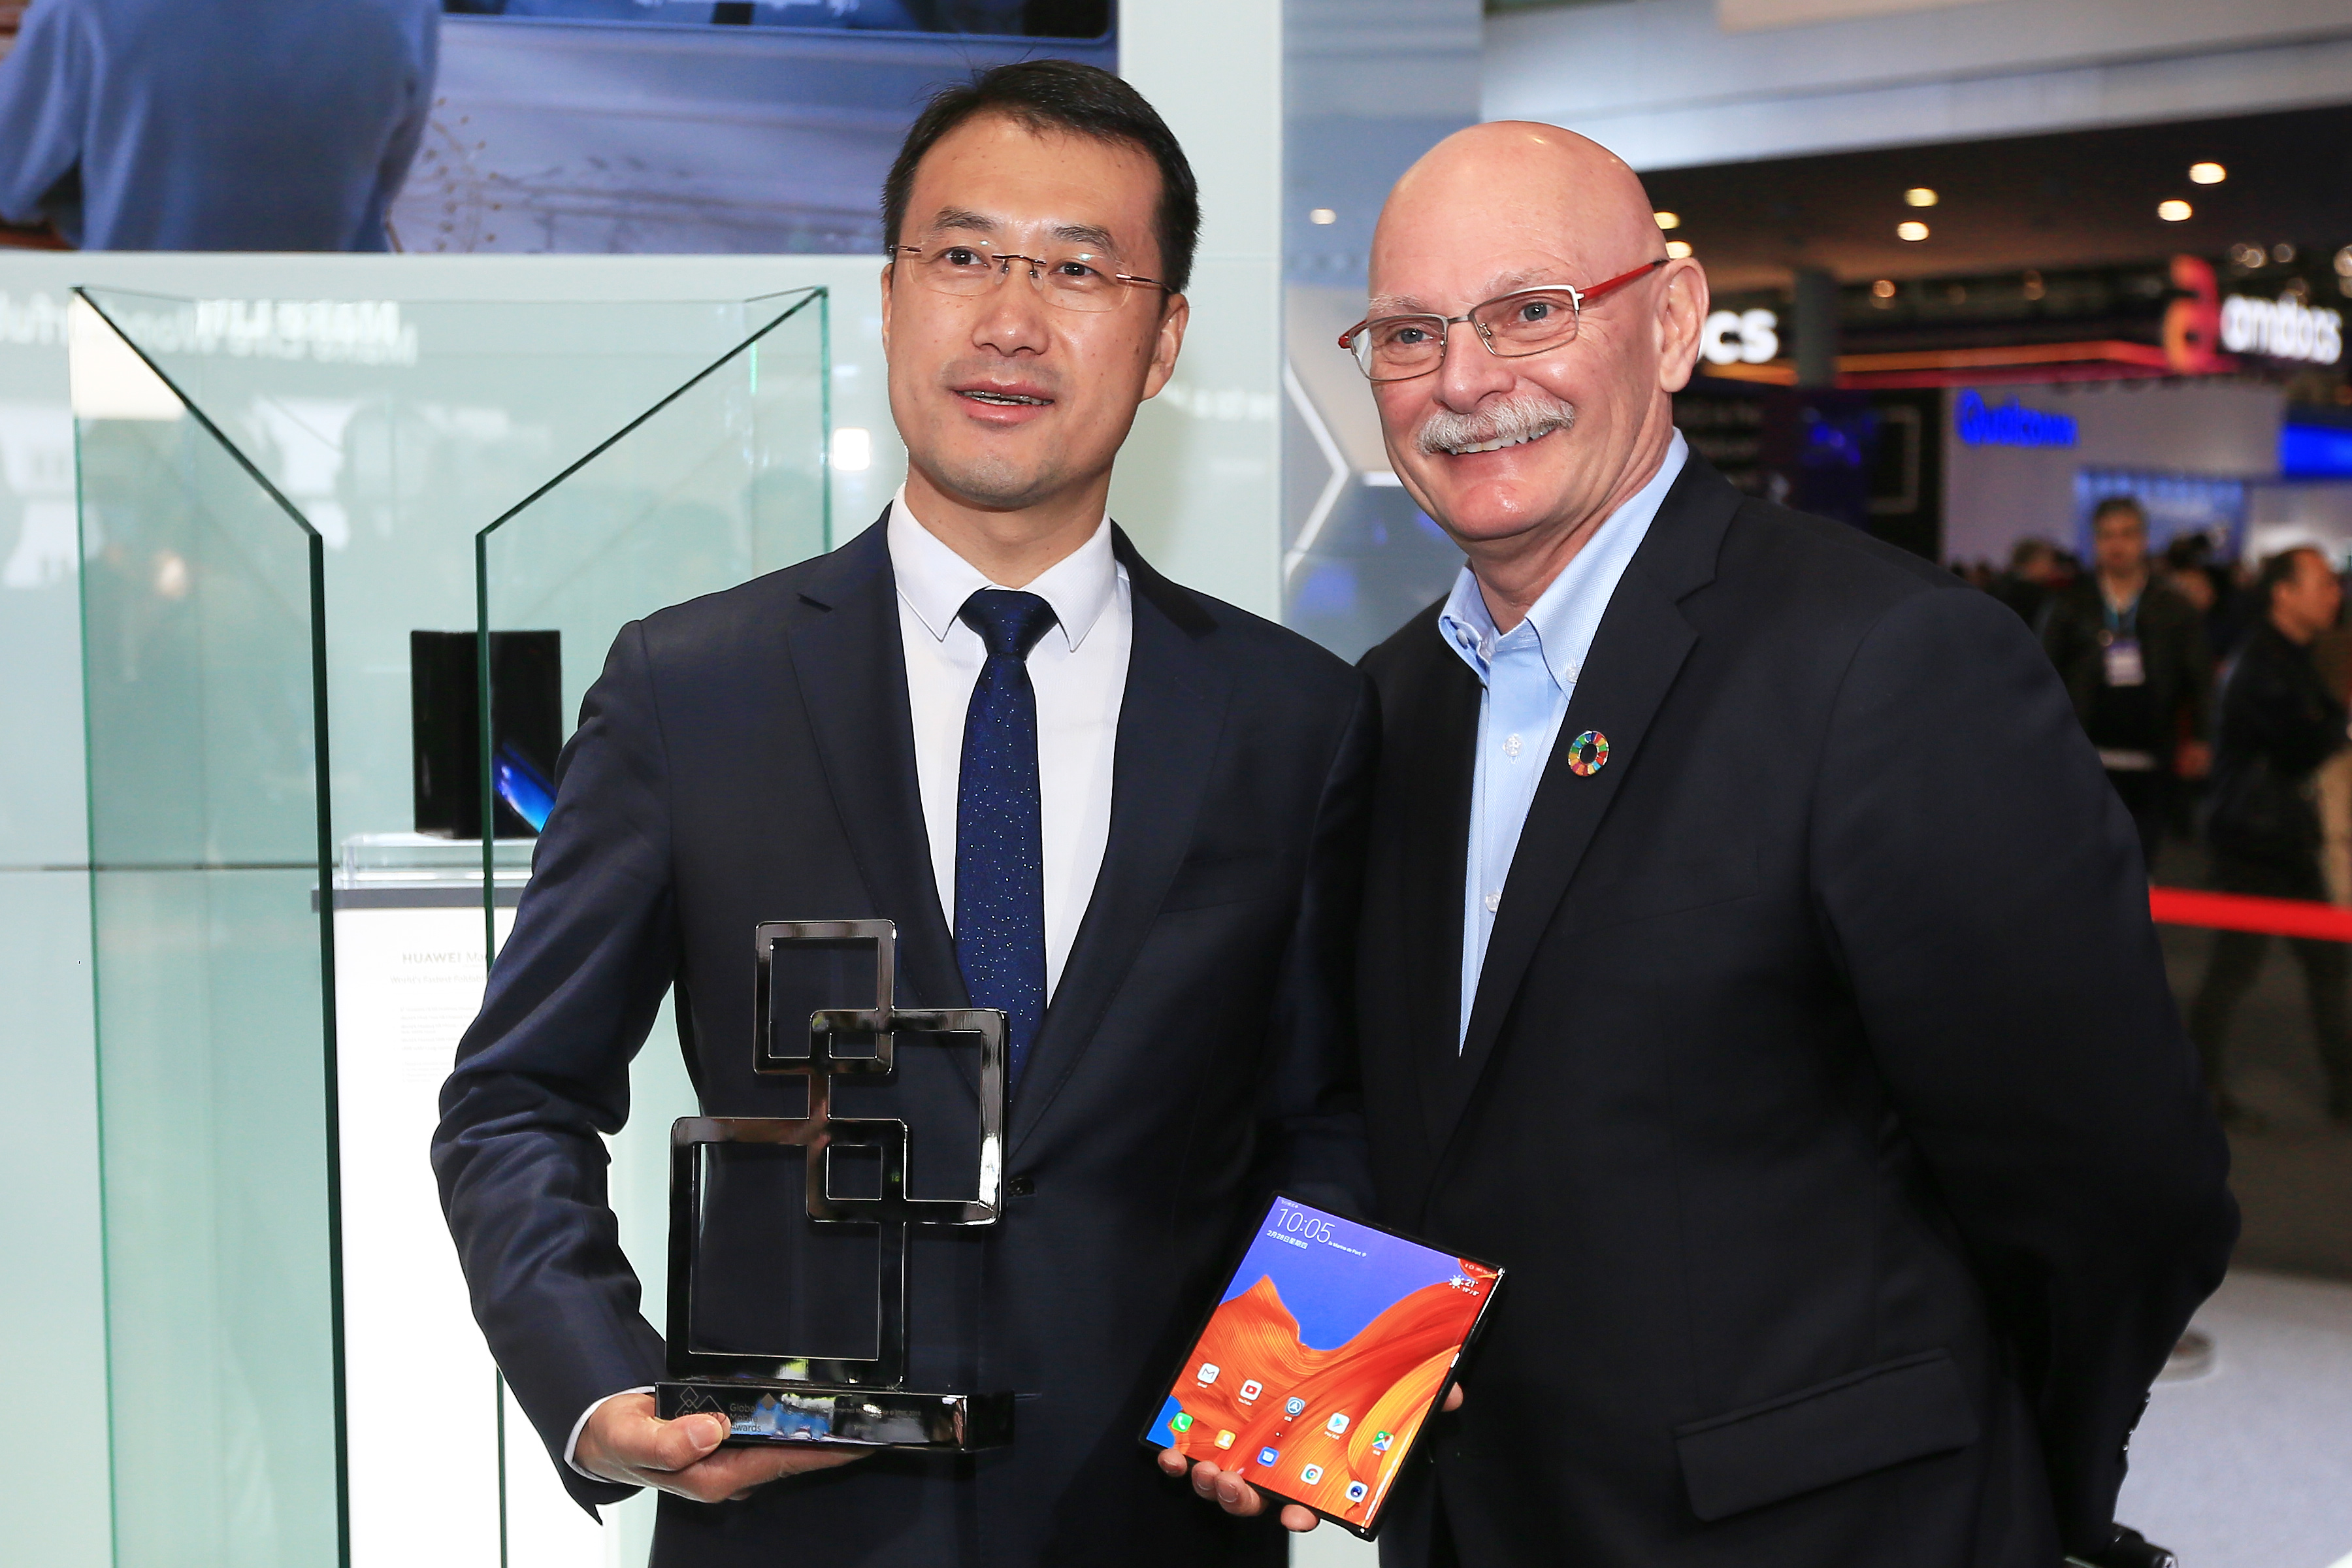 HUAWEI Mate X Wins GLOMO Award for Best New Connected Mobile Device at MWC19 Barcelona